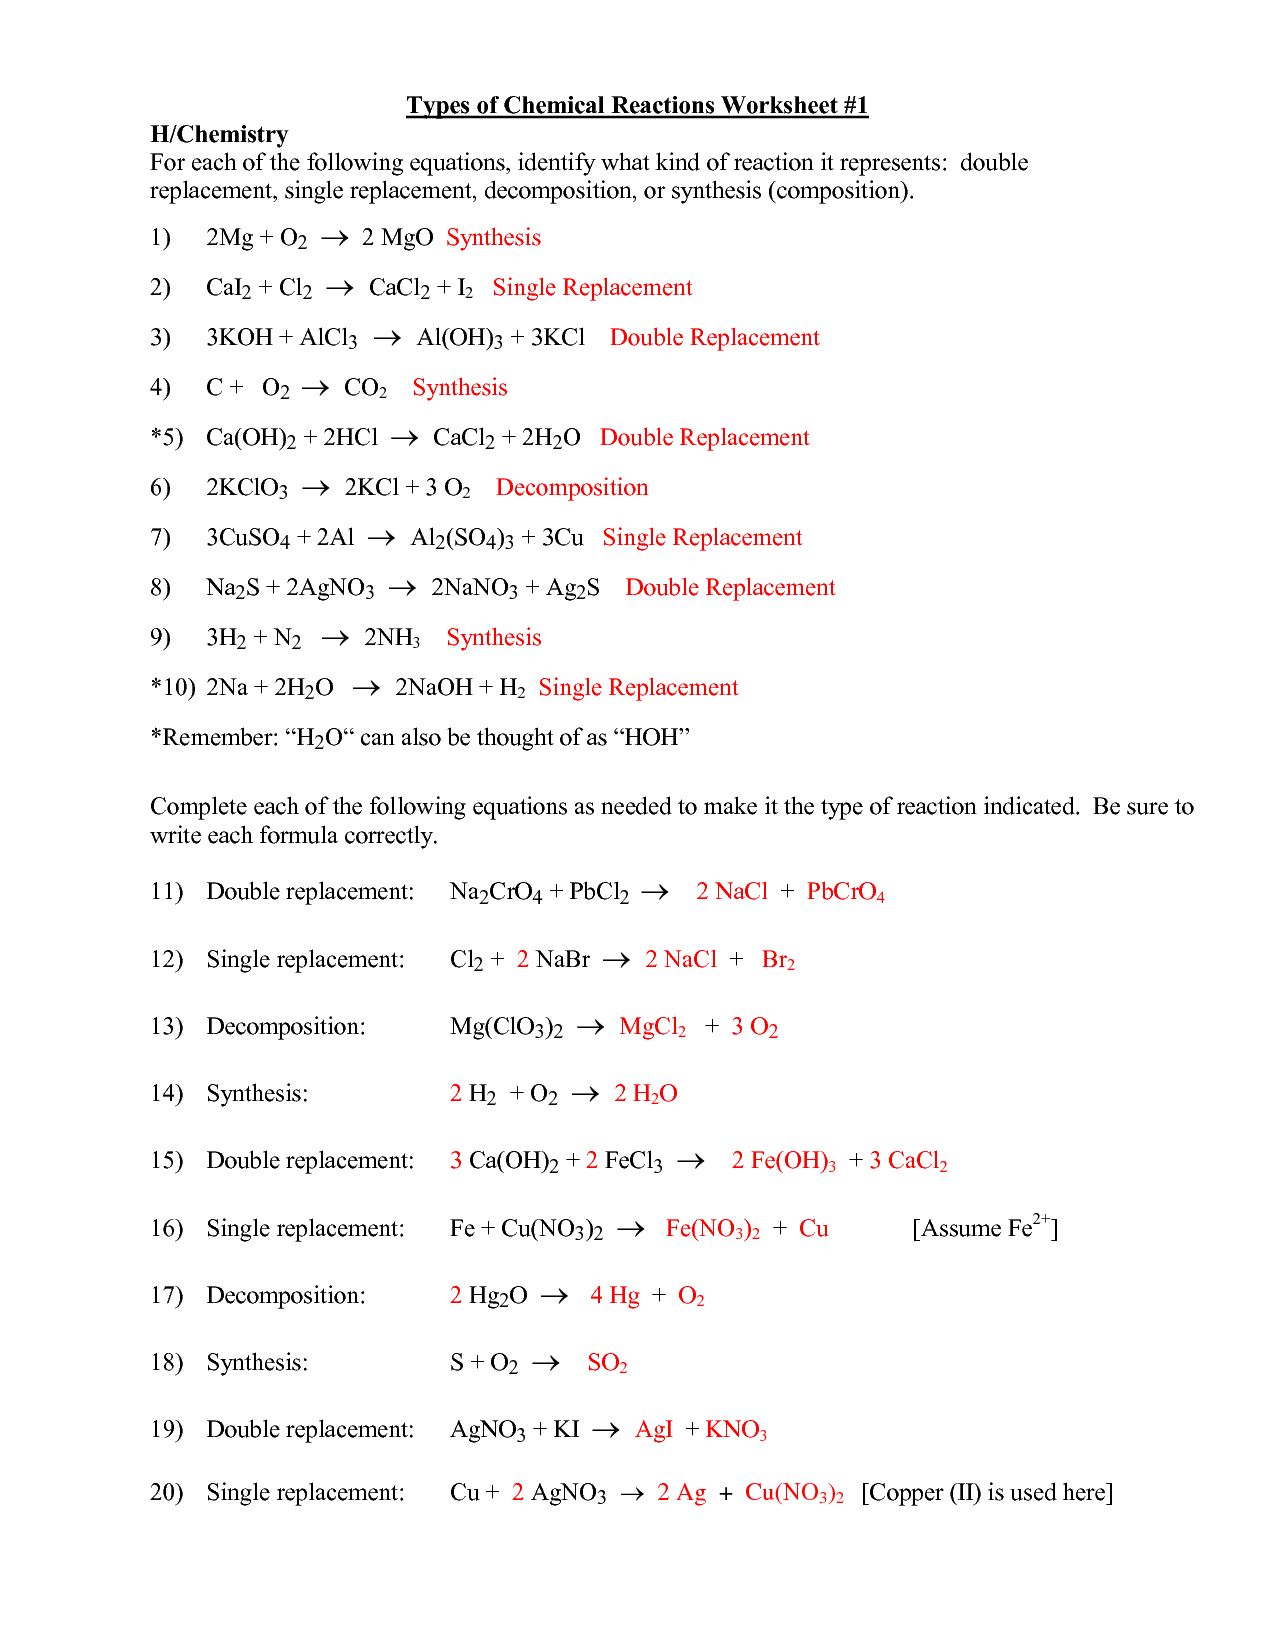 Types Of Chemical Reactions Worksheet Answers Com